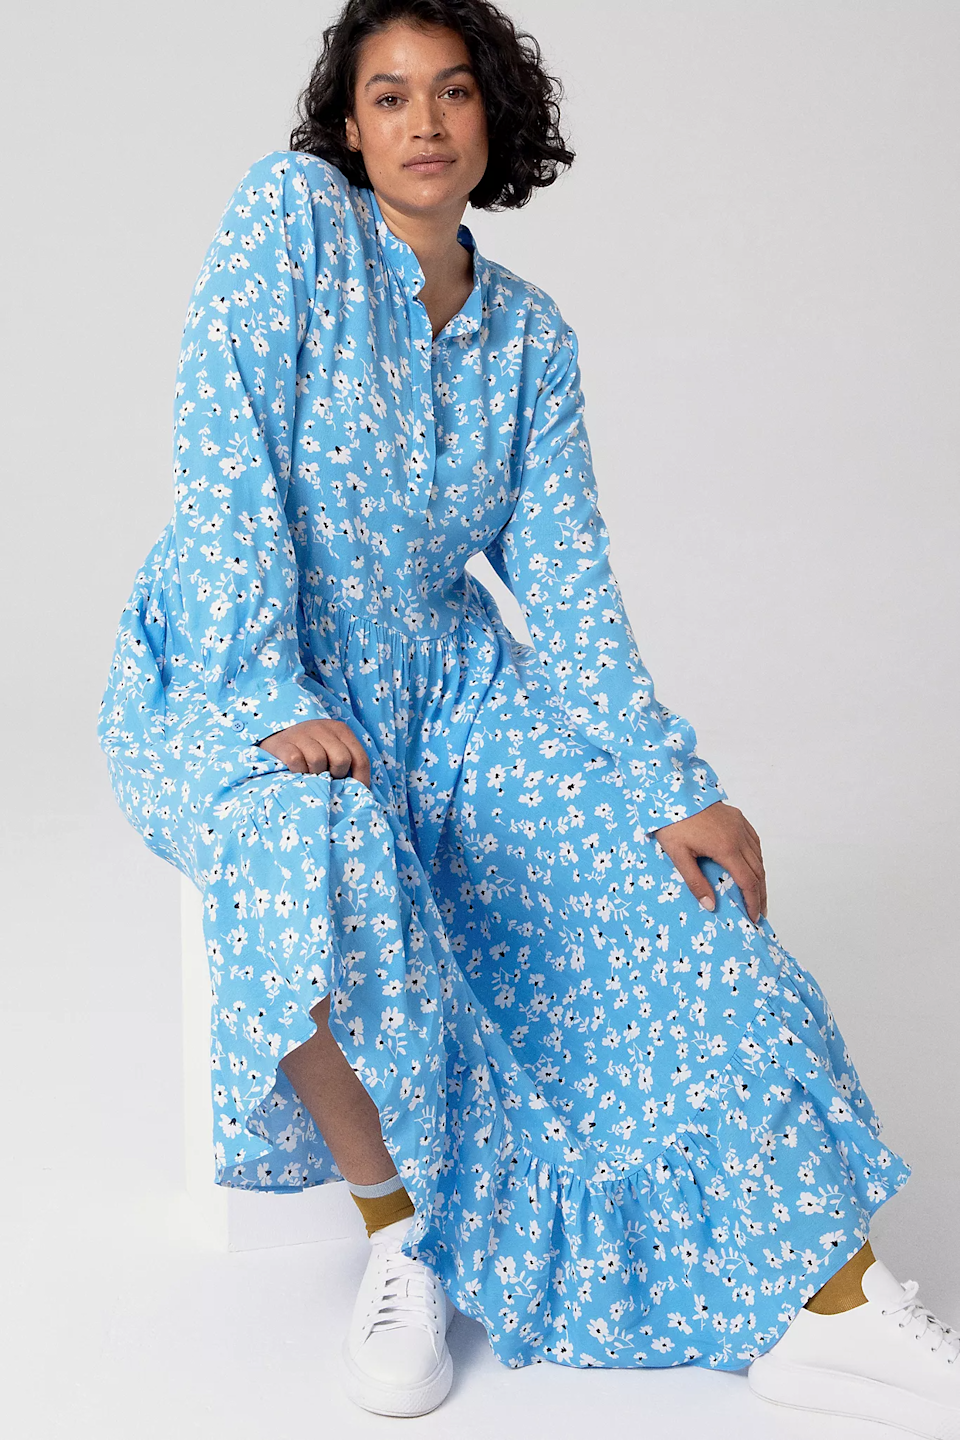 """<br><br><strong>Mare Mare</strong> Lynda Maxi Dress, $, available at <a href=""""https://go.skimresources.com/?id=30283X879131&url=https%3A%2F%2Fwww.anthropologie.com%2Fshop%2Flynda-maxi-dress%3Fcategory%3Dplus-size-dresses%26color%3D040%26type%3DPLUS%26viewcode%3Dc%26quantity%3D1"""" rel=""""nofollow noopener"""" target=""""_blank"""" data-ylk=""""slk:Anthropologie"""" class=""""link rapid-noclick-resp"""">Anthropologie</a>"""